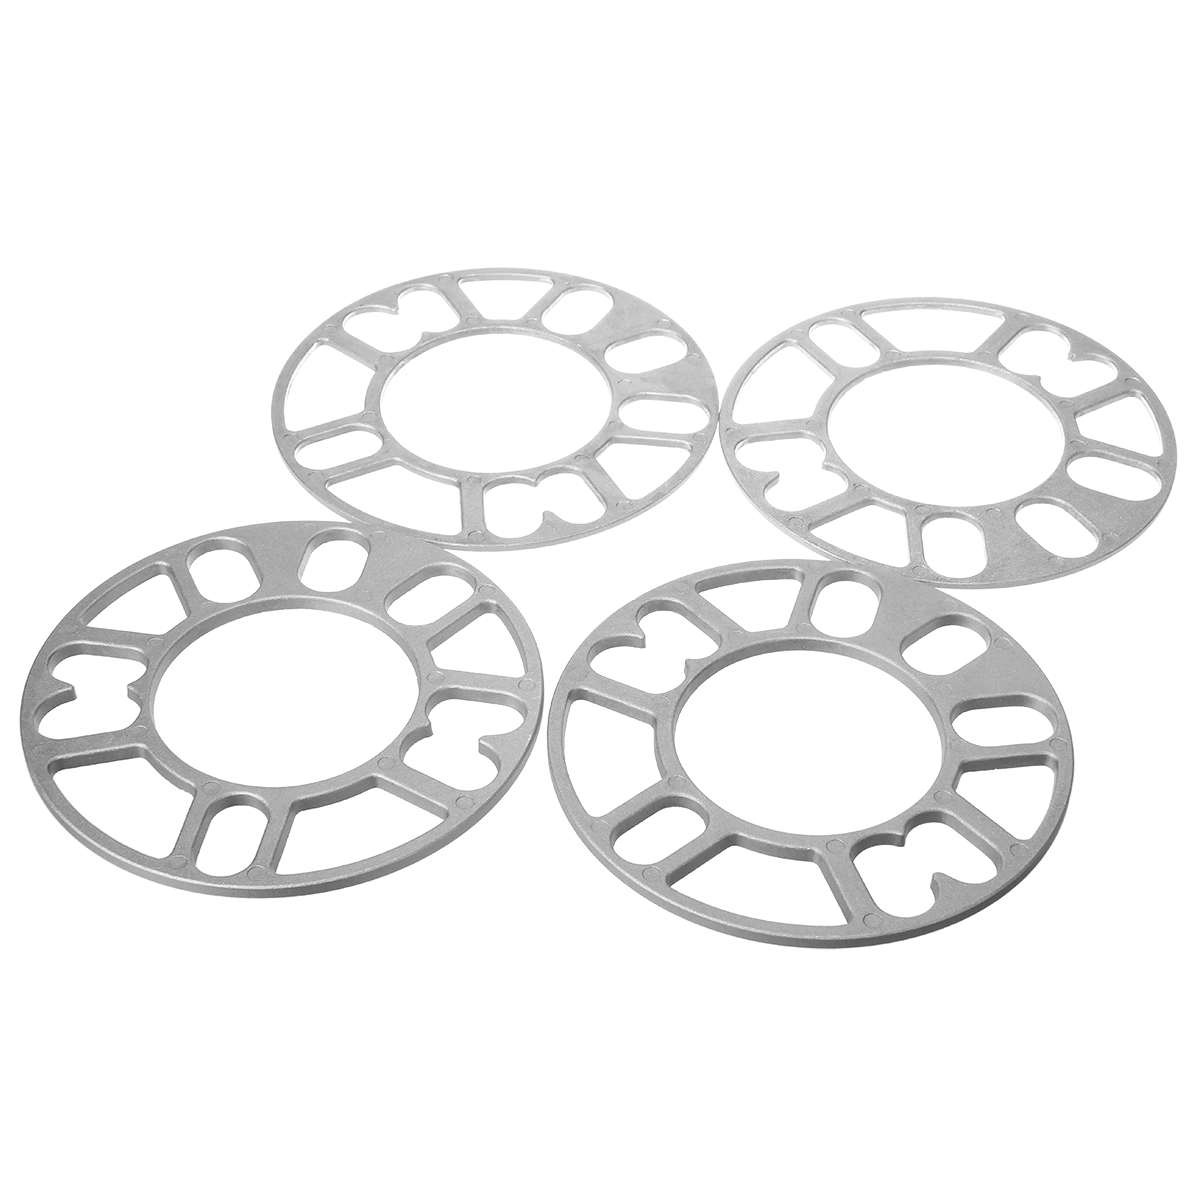 Universal 4pcs 3mm 5mm Alloy <font><b>Wheel</b></font> <font><b>Spacers</b></font> Adaptor Shims Plate 4/5 Stud Silver 4x100 4x108 4x114.3 5x100 5x108 5x112 <font><b>5x114.3</b></font> image